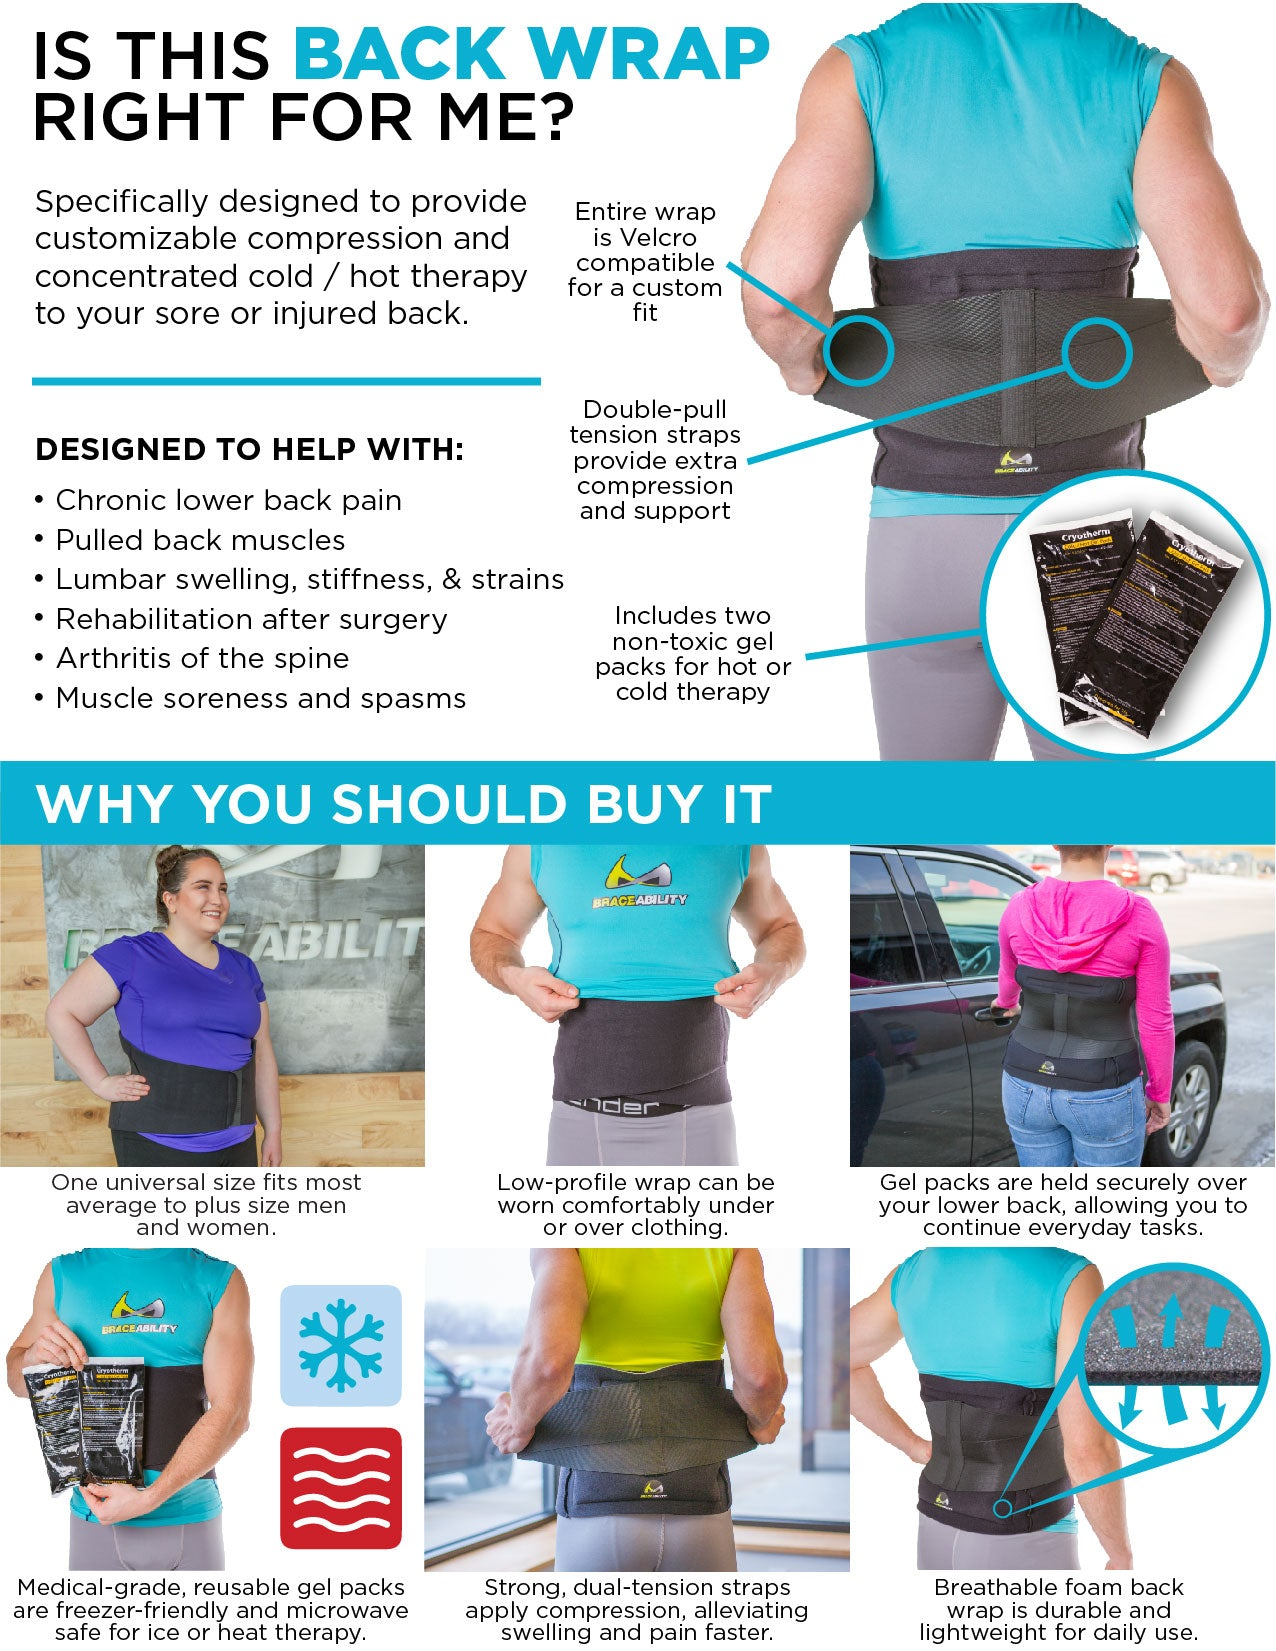 hot \u0026 cold therapy back brace wrap ice pack heat pad for muscle painhot \u0026 cold therapy back brace with two reusable gel packs for backaches